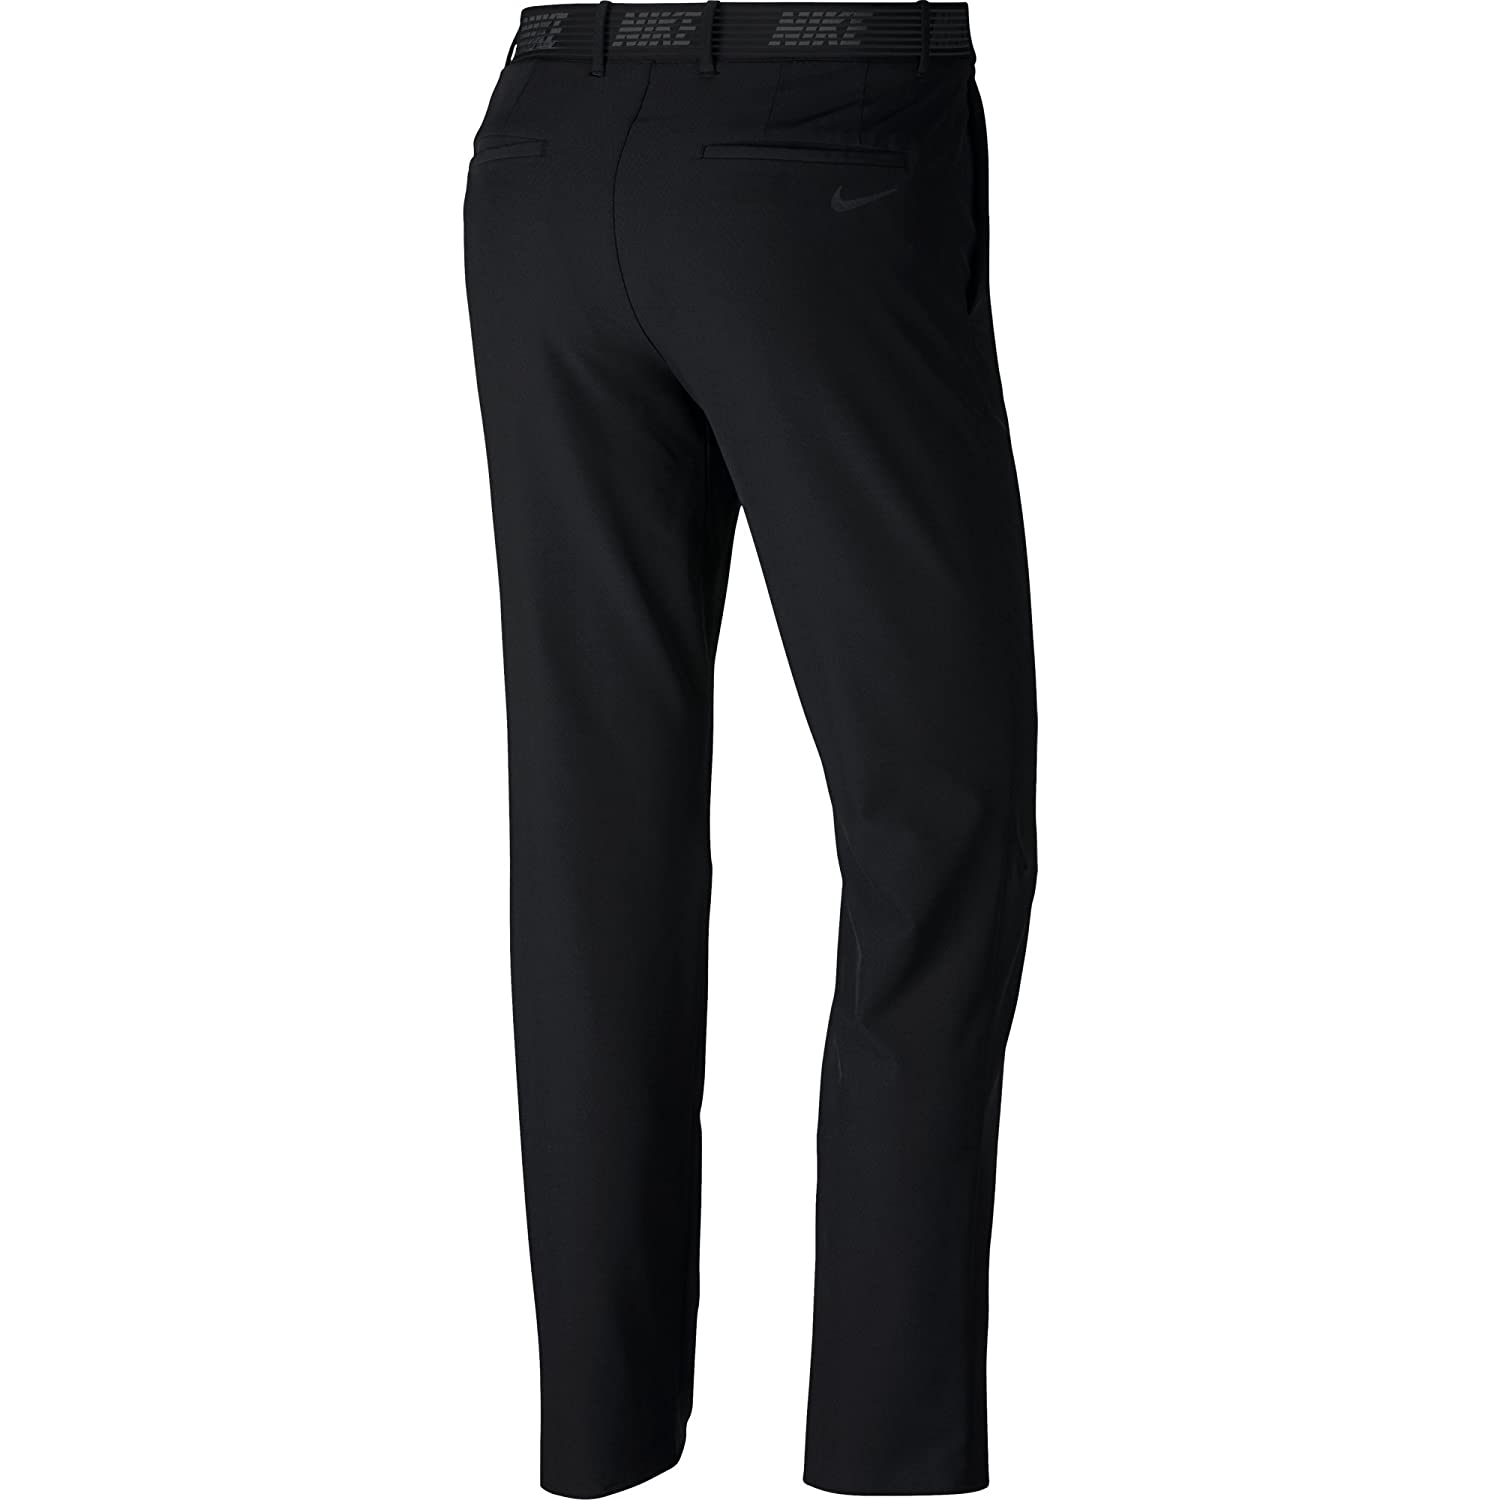 fd35ea6f Amazon.com : Nike Men's Flex Slim Golf Pants : Clothing